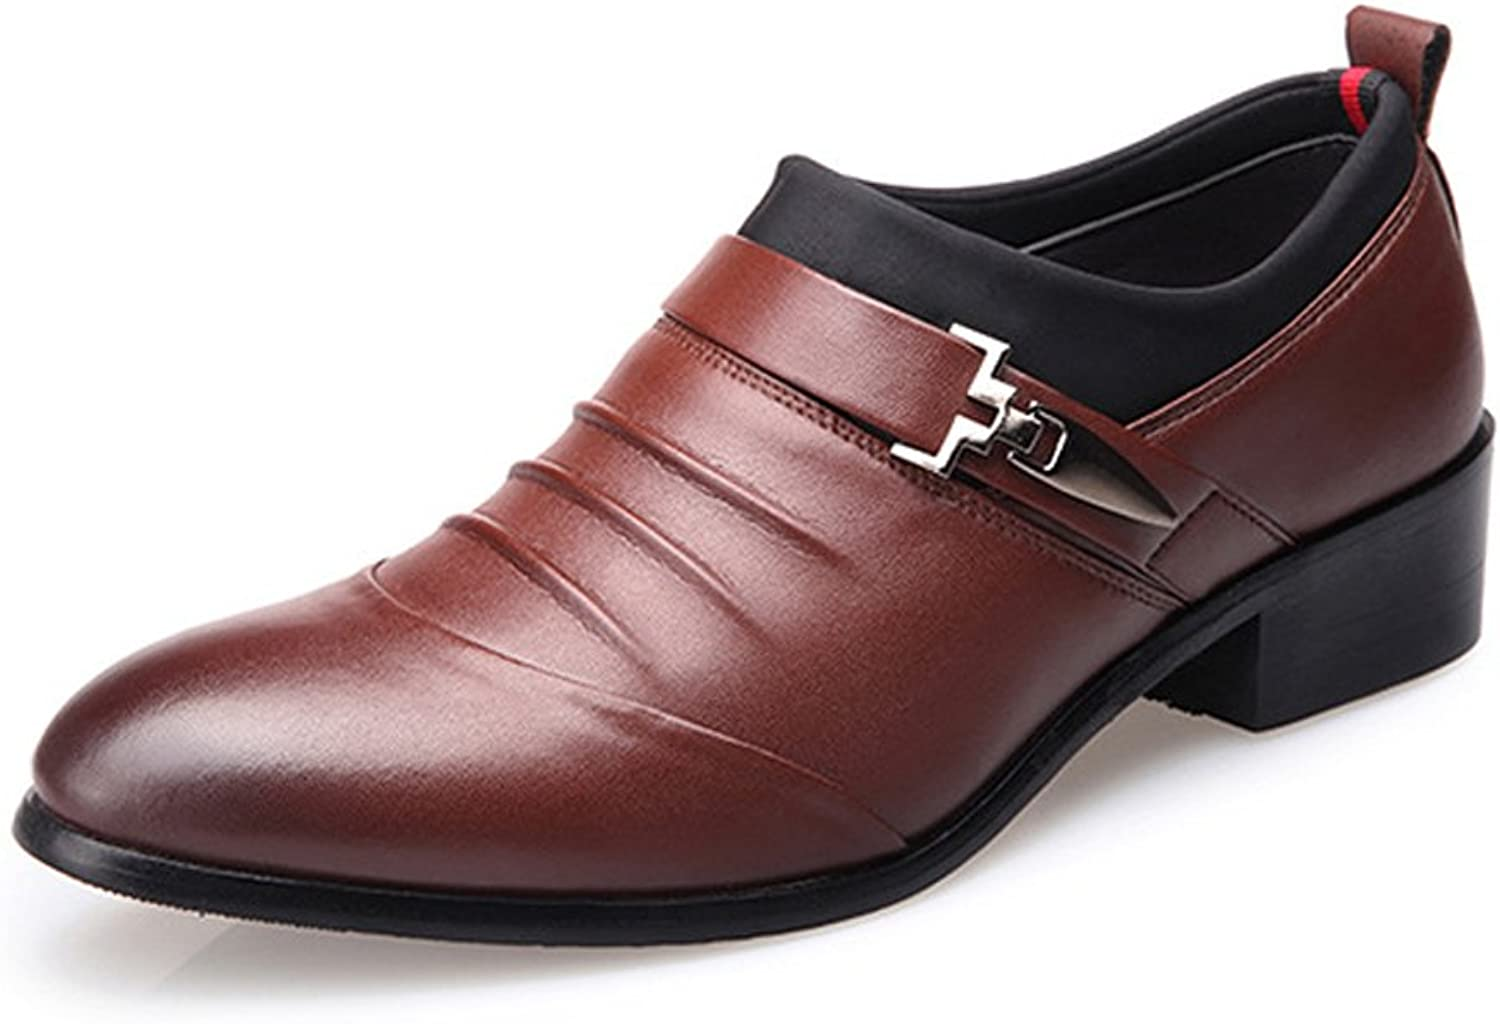 CHENXD shoes, Men's Classic Business Breathable Lined Oxfords shoes Matte PU Leather Splice Upper Slip-on